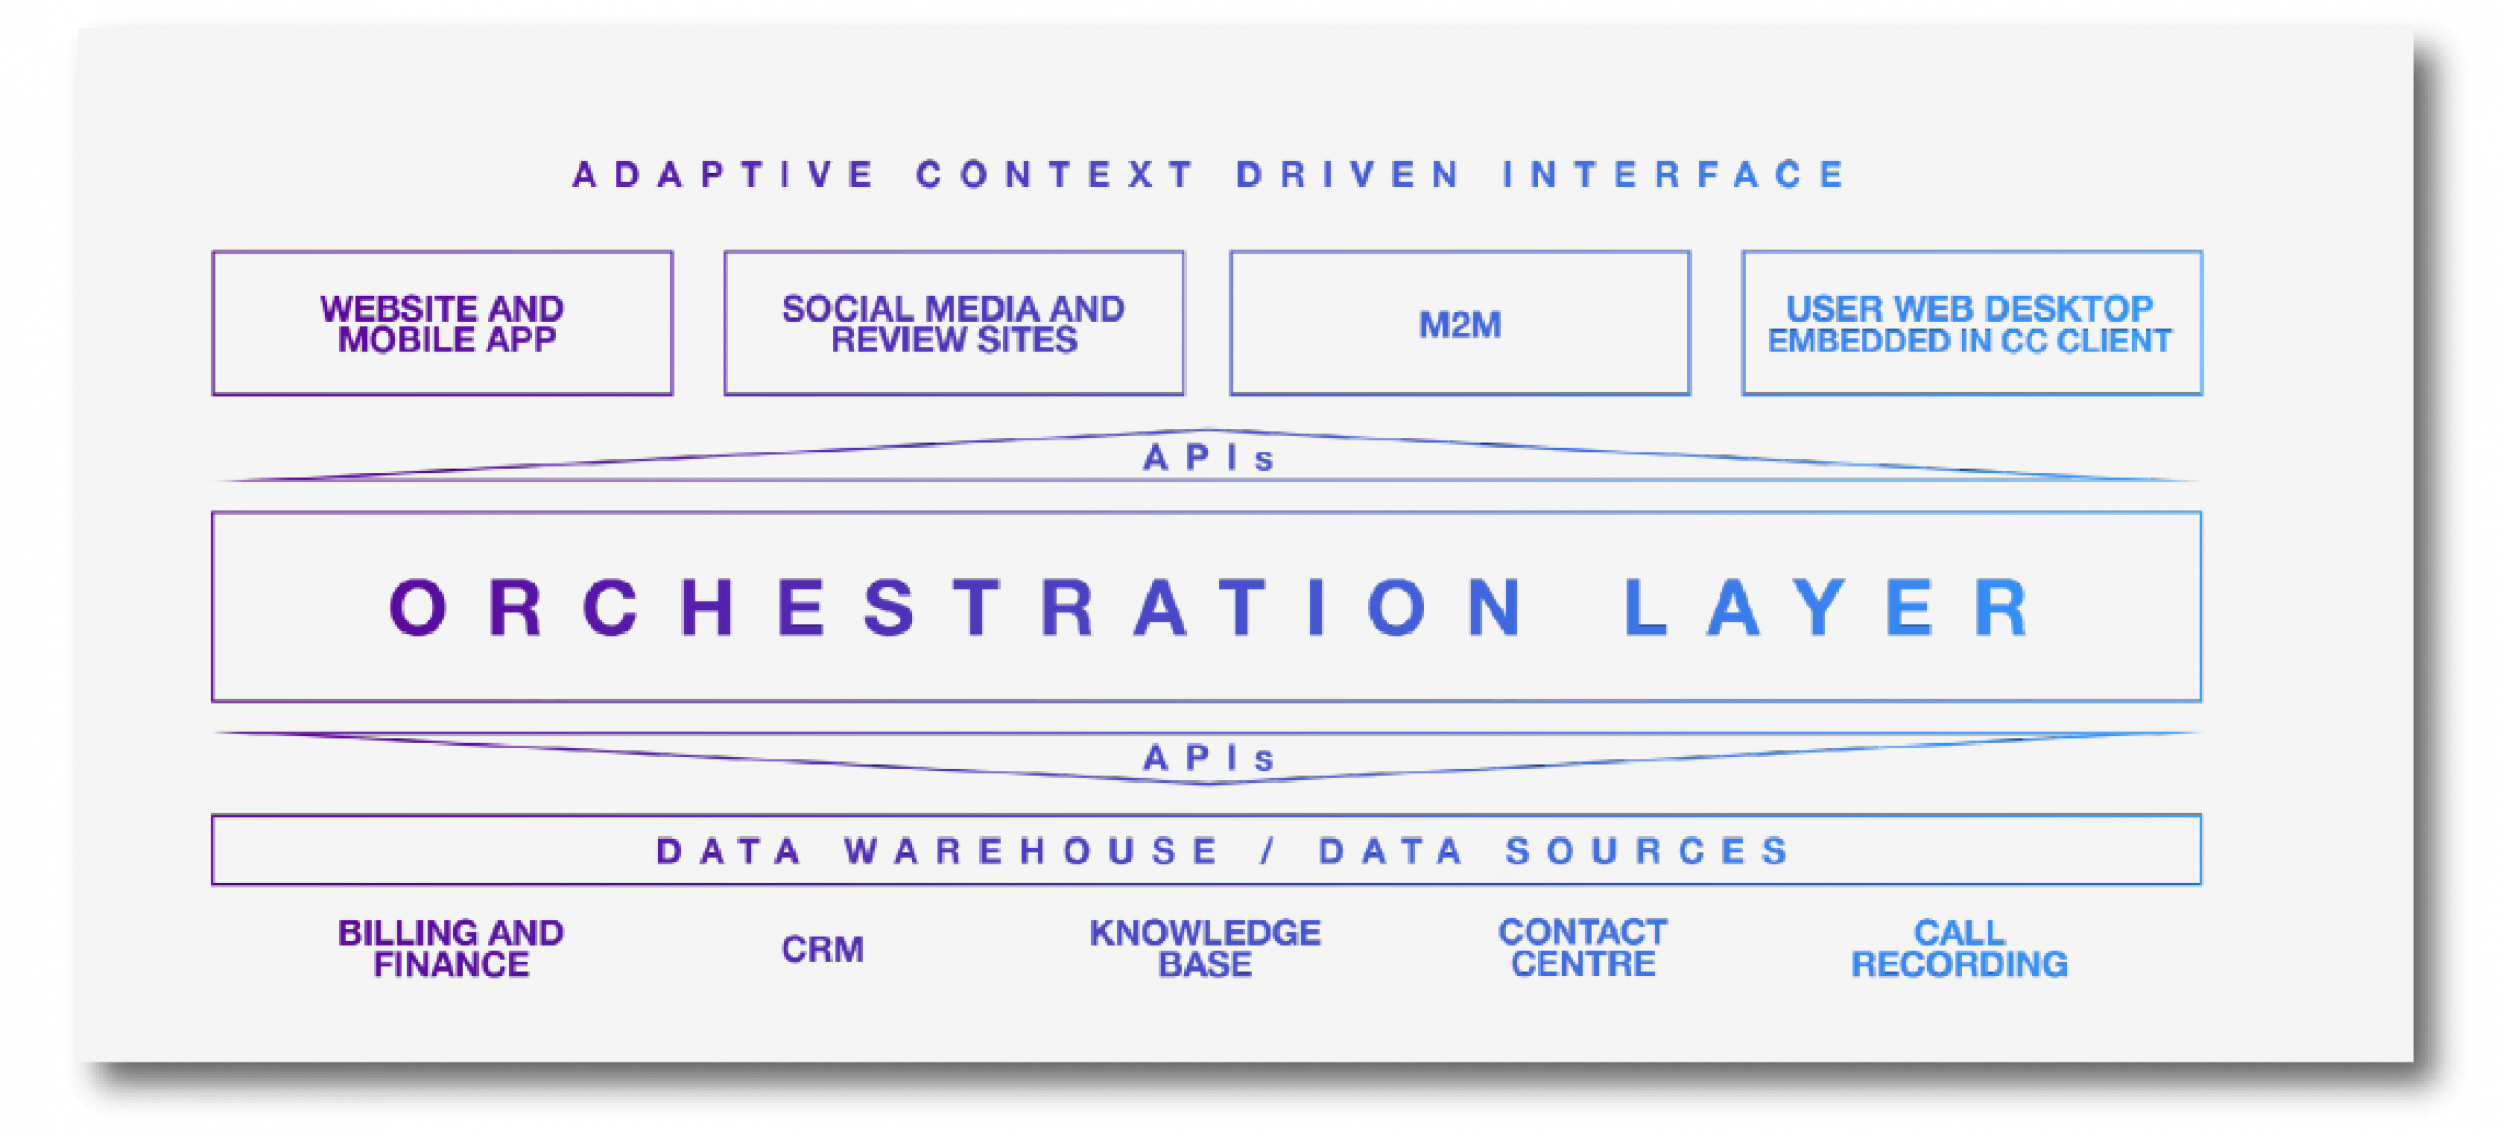 The Orchestration Layer